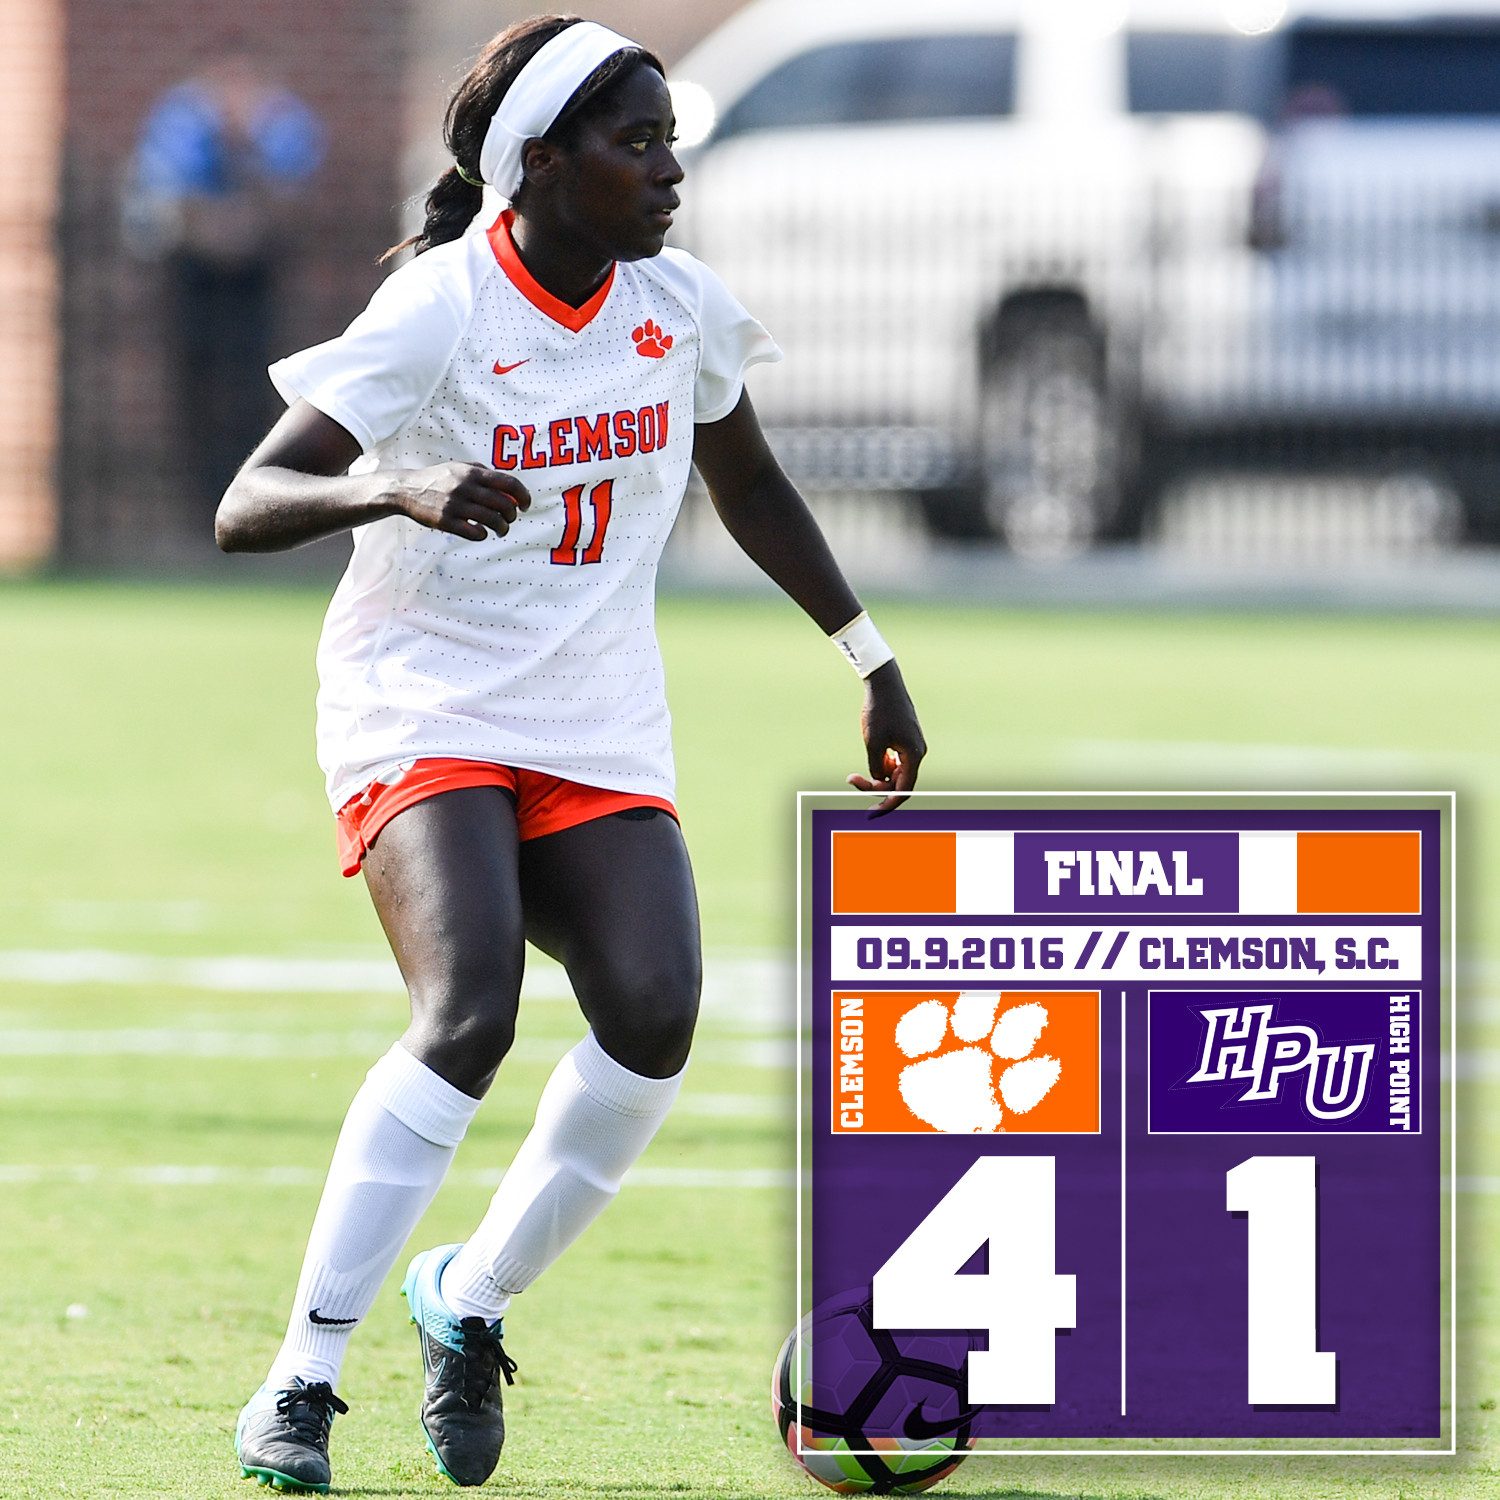 #13 Tigers? Offense Too Much for High Point in 4-1 Victory